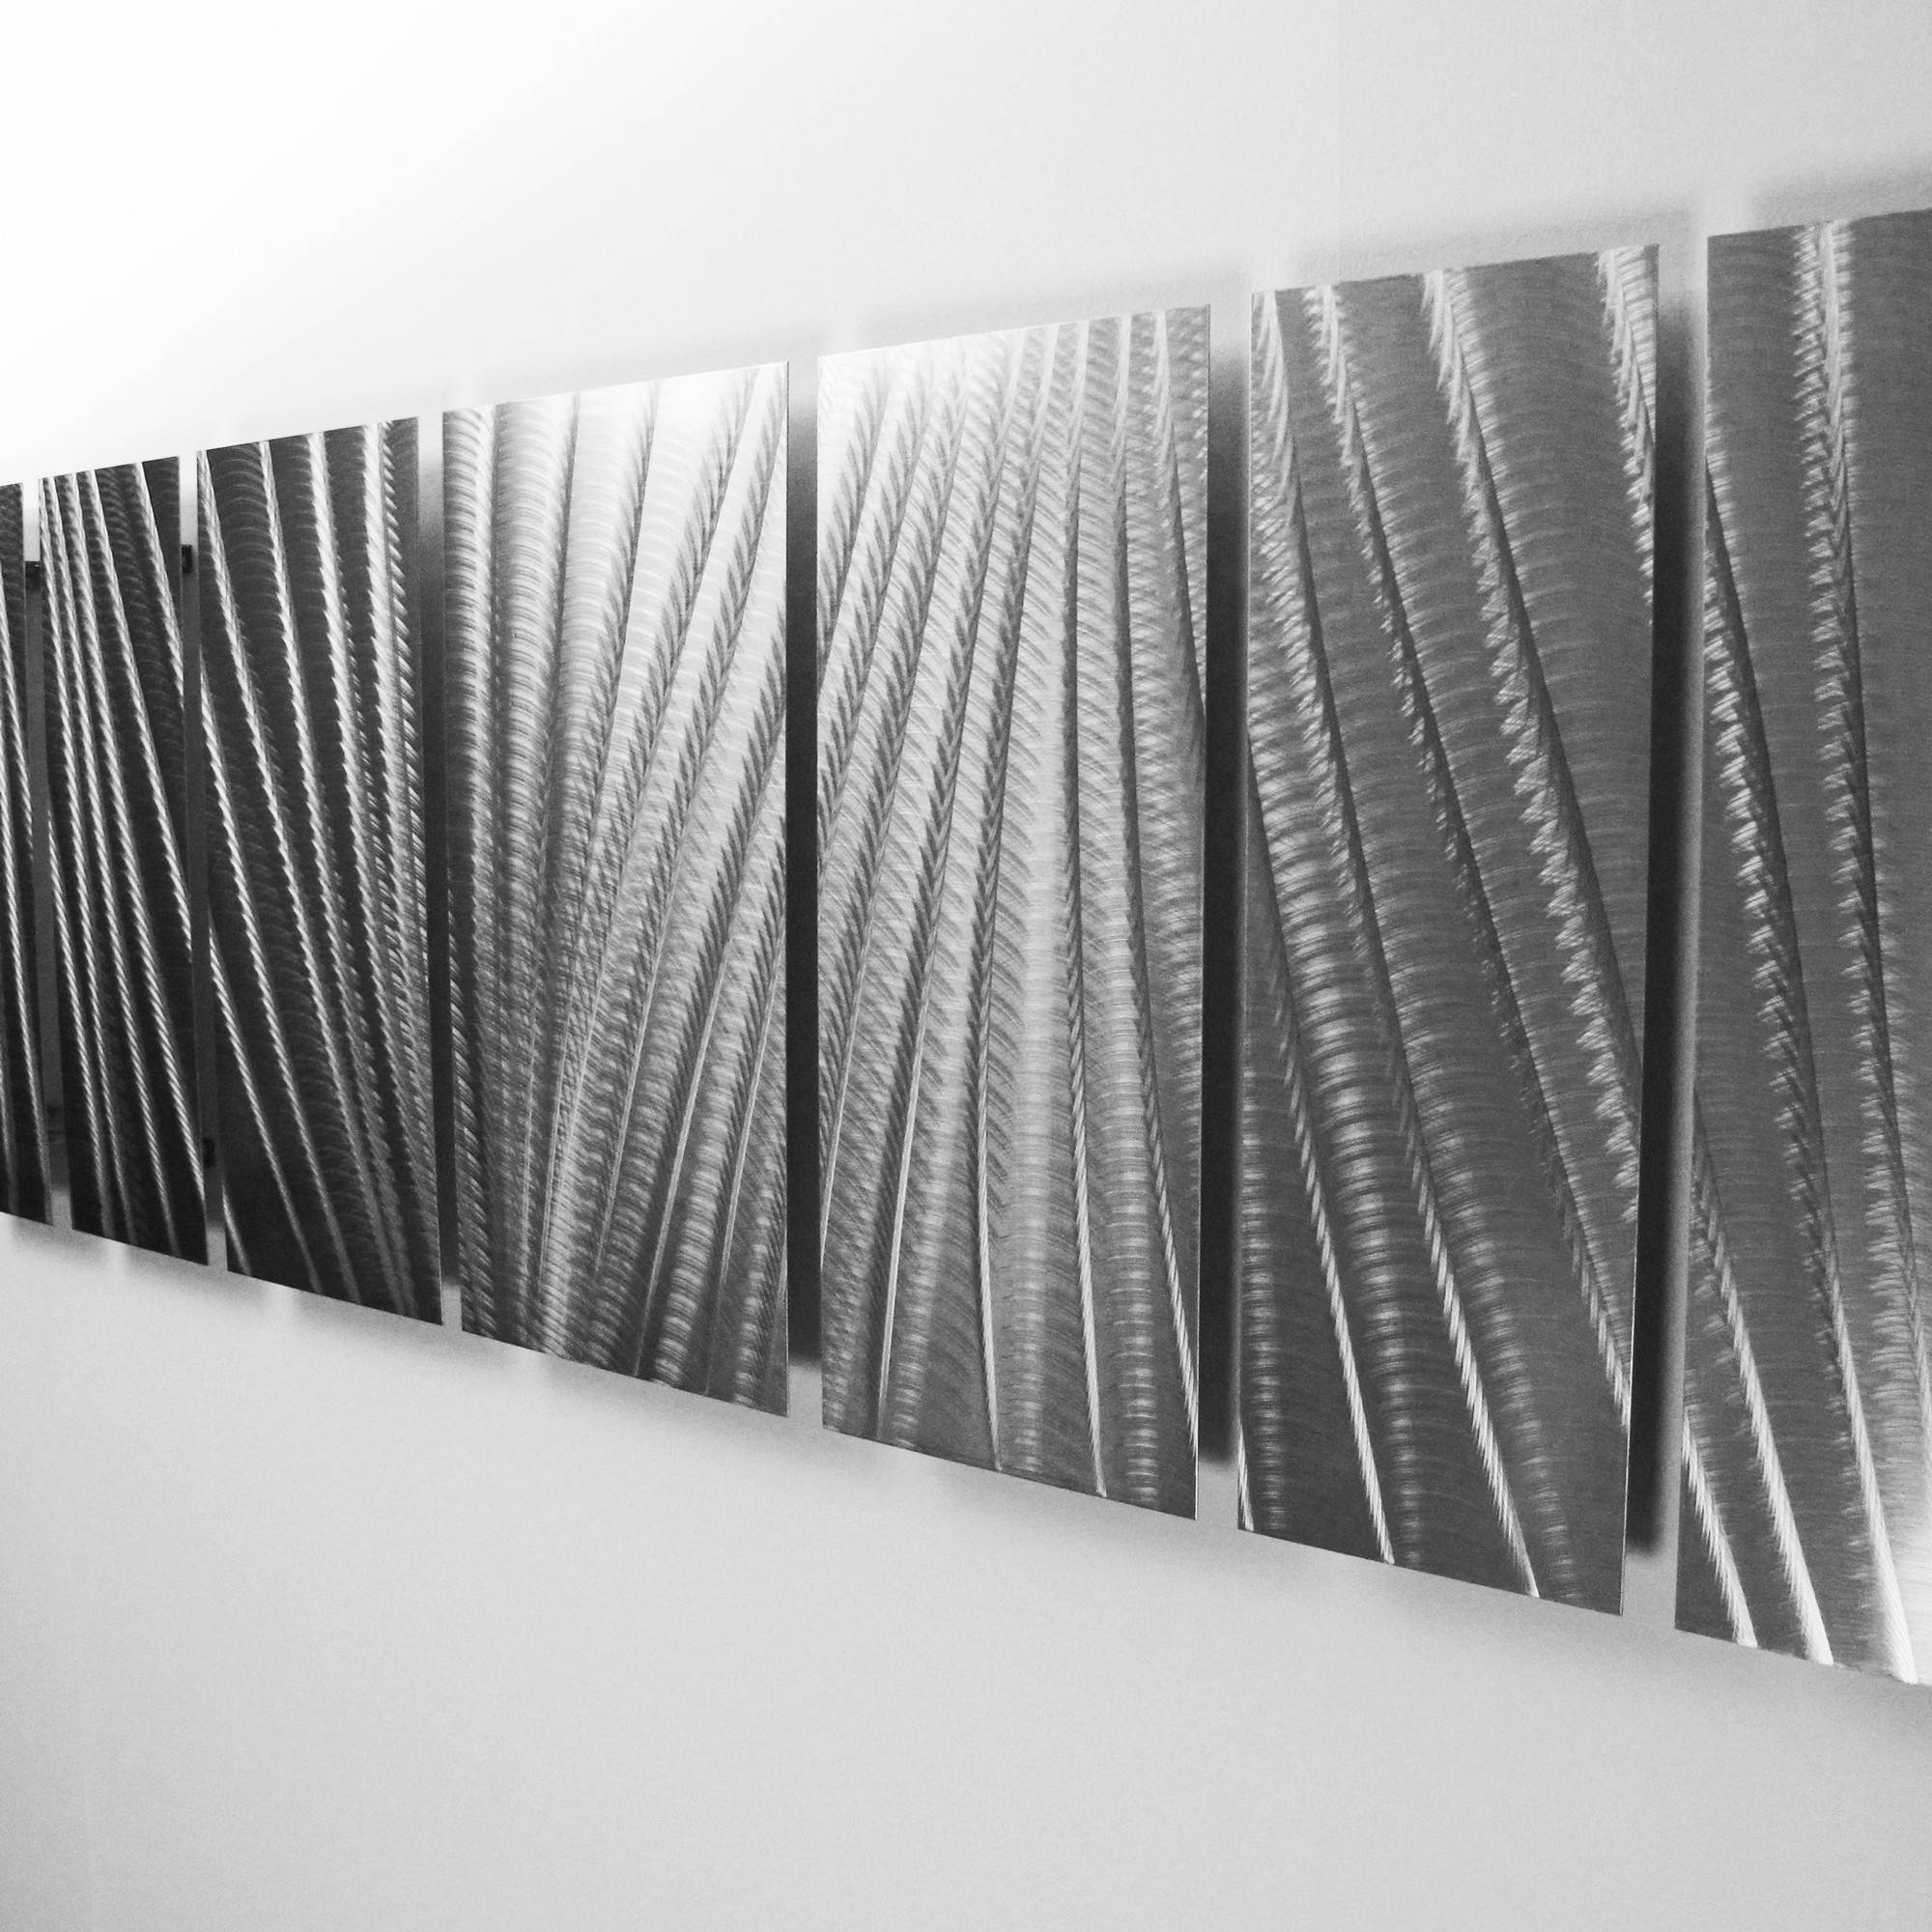 Illuminated Artwork Silver Gallery Of Art Silver Wall Art – Home Within Newest Black Silver Wall Art (Gallery 10 of 20)